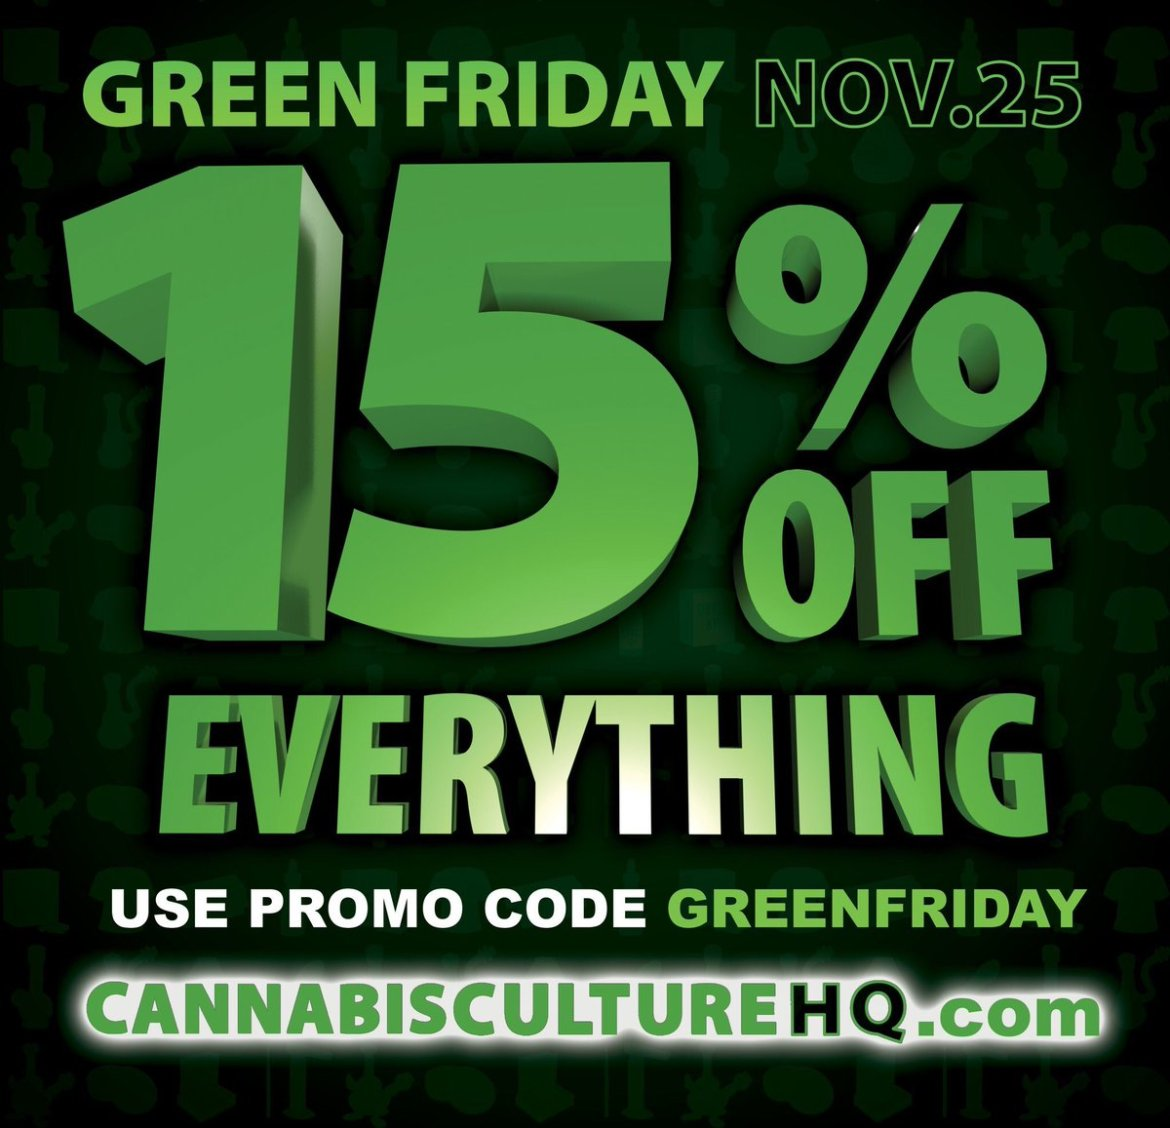 15% OFF EVERYTHING! Green Friday Sale @  Use promo code GreenFriday #greenfriday #blackfriday